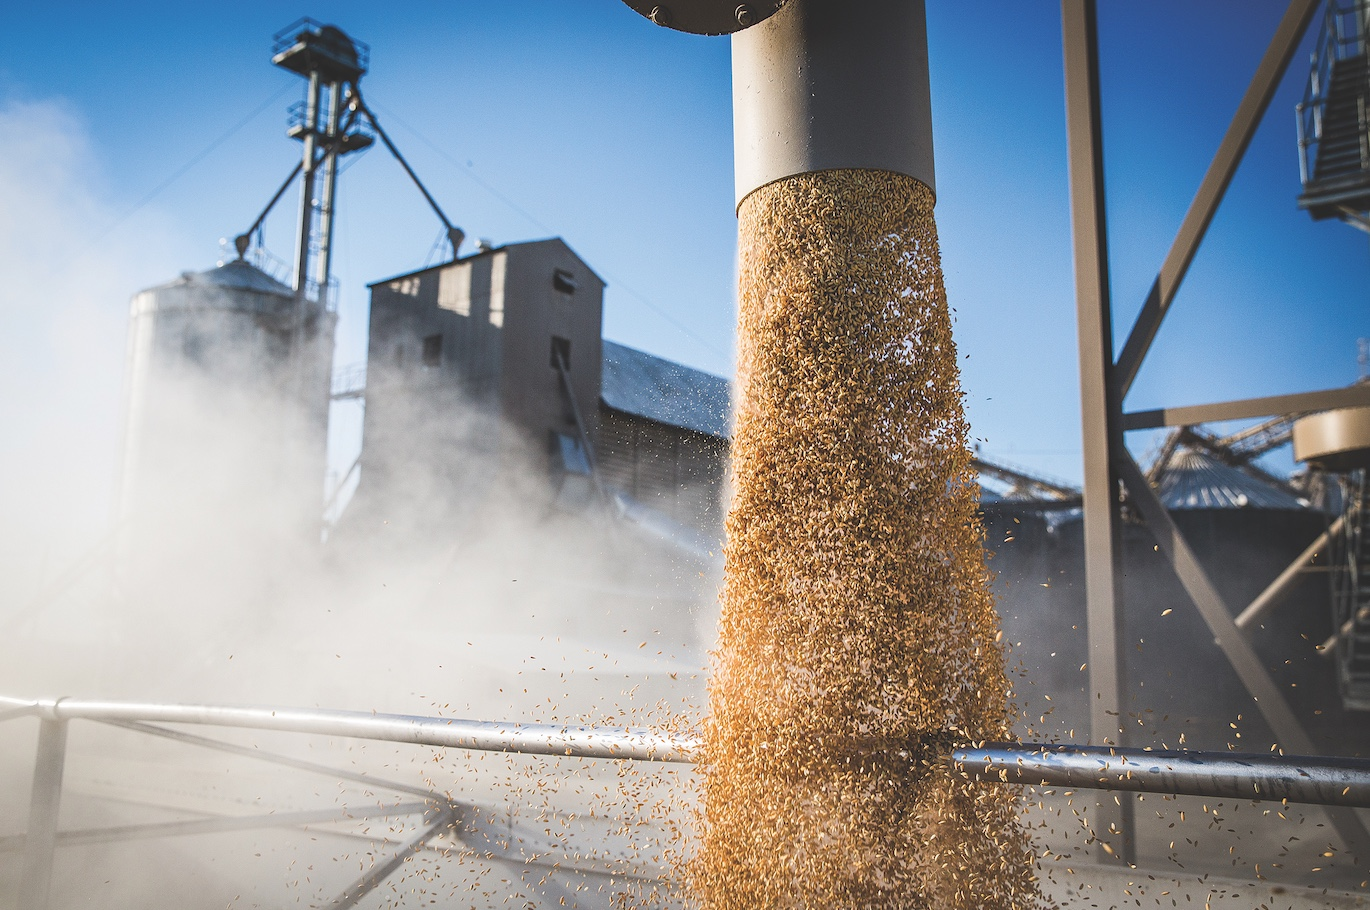 A crop of rice gets loaded onto a truck at Montna Farms. (Photo by Max Whittaker)